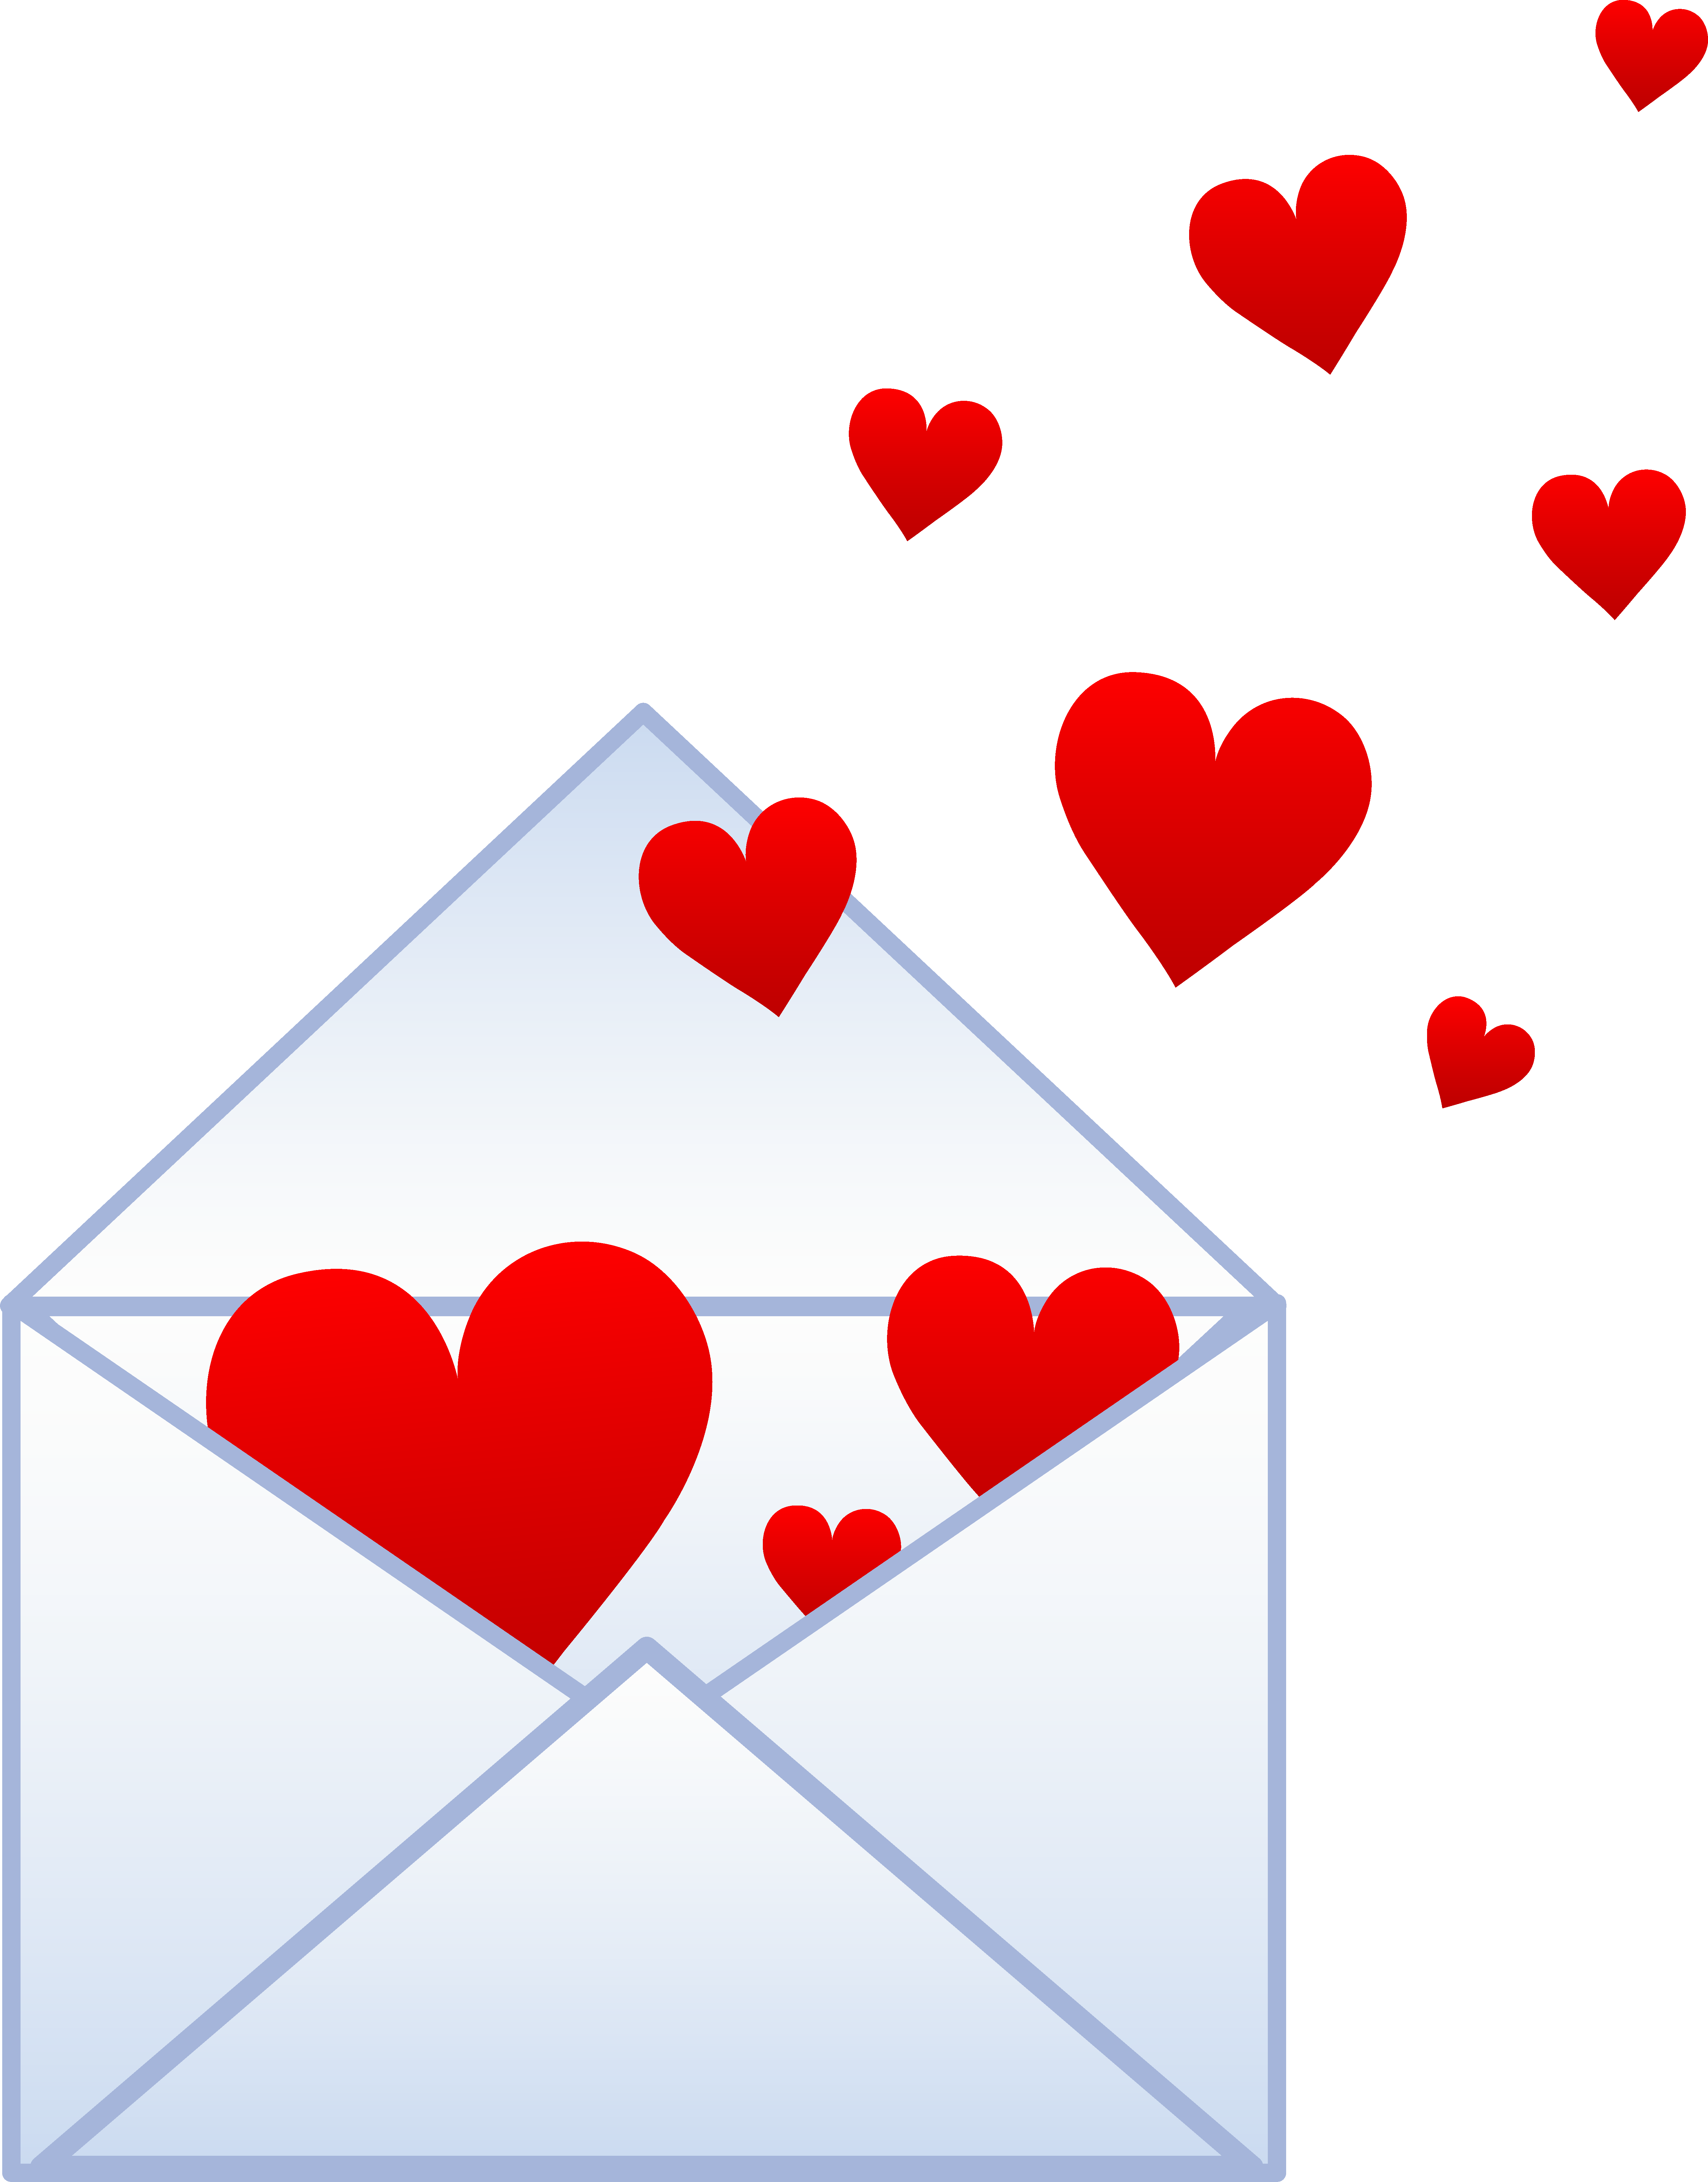 Free valentine cliparts download. Envelope clipart heart seal clipart free library